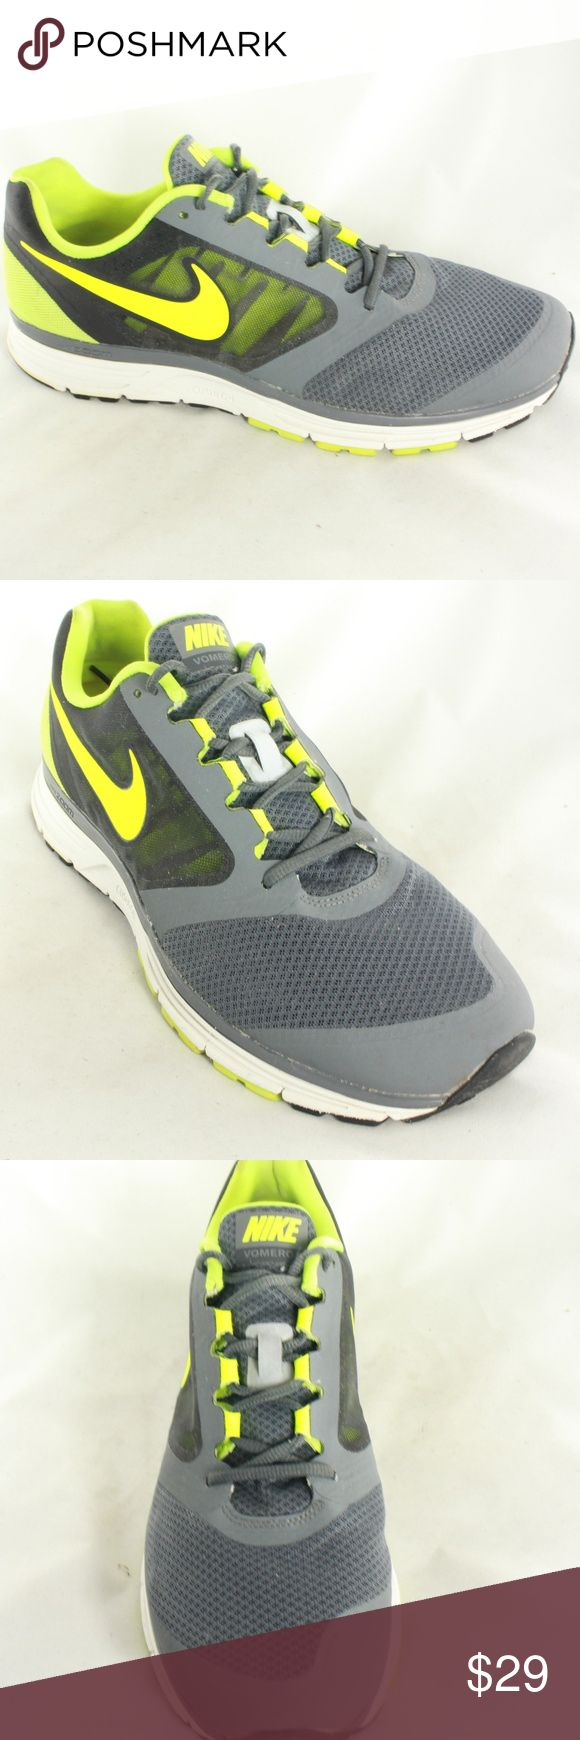 Nike Zoom Vomero Yellow Gray Active Running Shoes Lightweight, very breathable, and still supportive and cushioned running shoes. Upper is mint condition. Insole and midsole are clean and sole is 9.5/10 condition with almost no normal wear. Great shoes for casual wear, running or gym sessions. Does not come with insole pad. Size 14 Nike Shoes Athletic Shoes